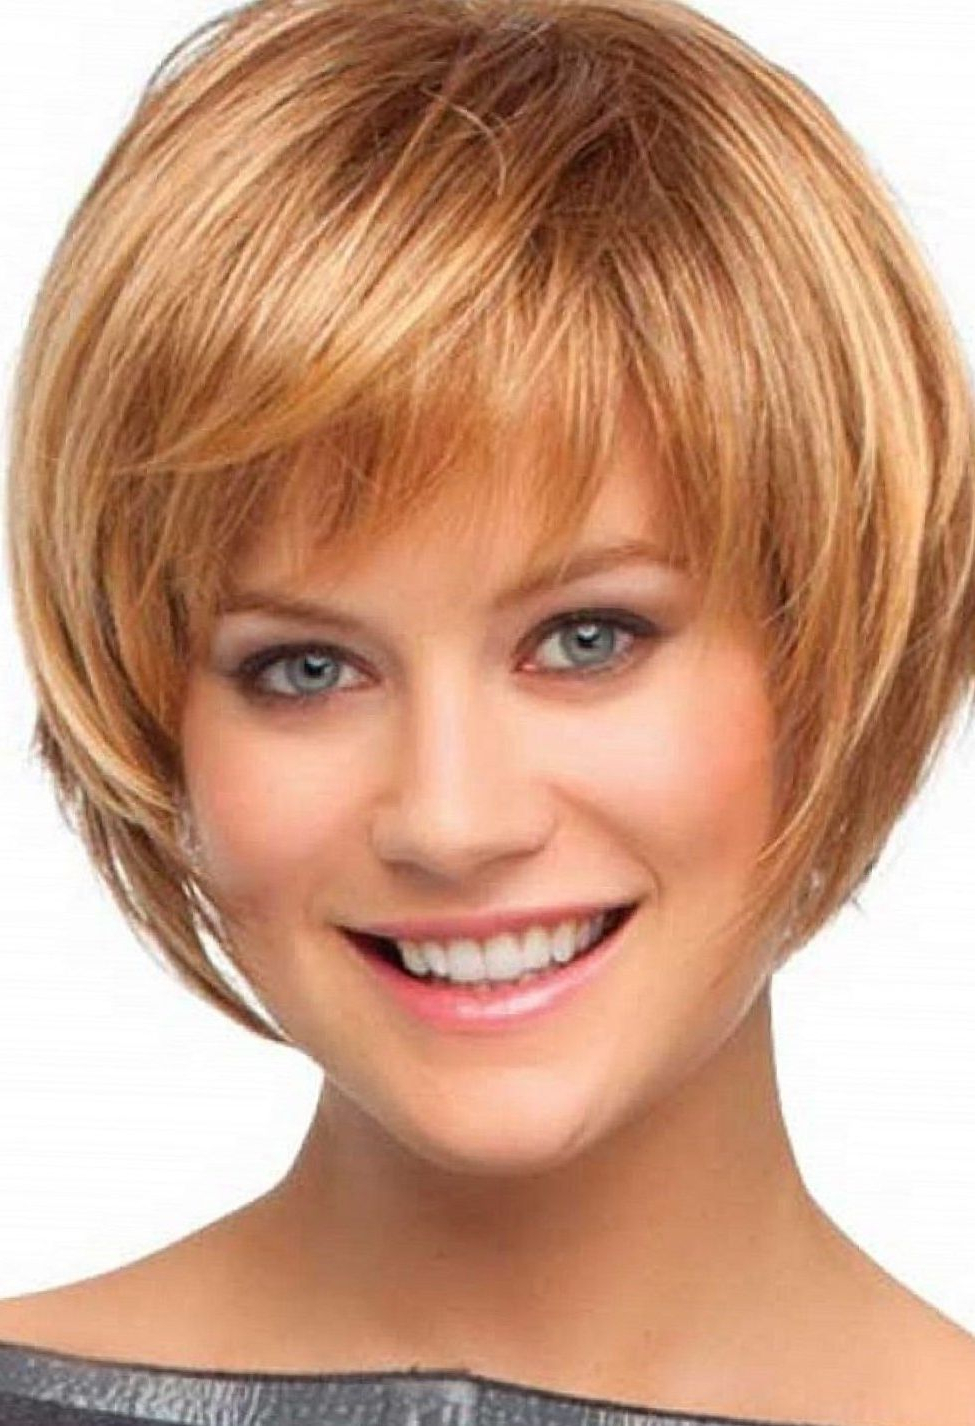 Pinkim On Hair In 2018 | Pinterest | Hair Styles, Hair And Short Inside Layered Bob Haircuts For Fine Hair (View 14 of 20)